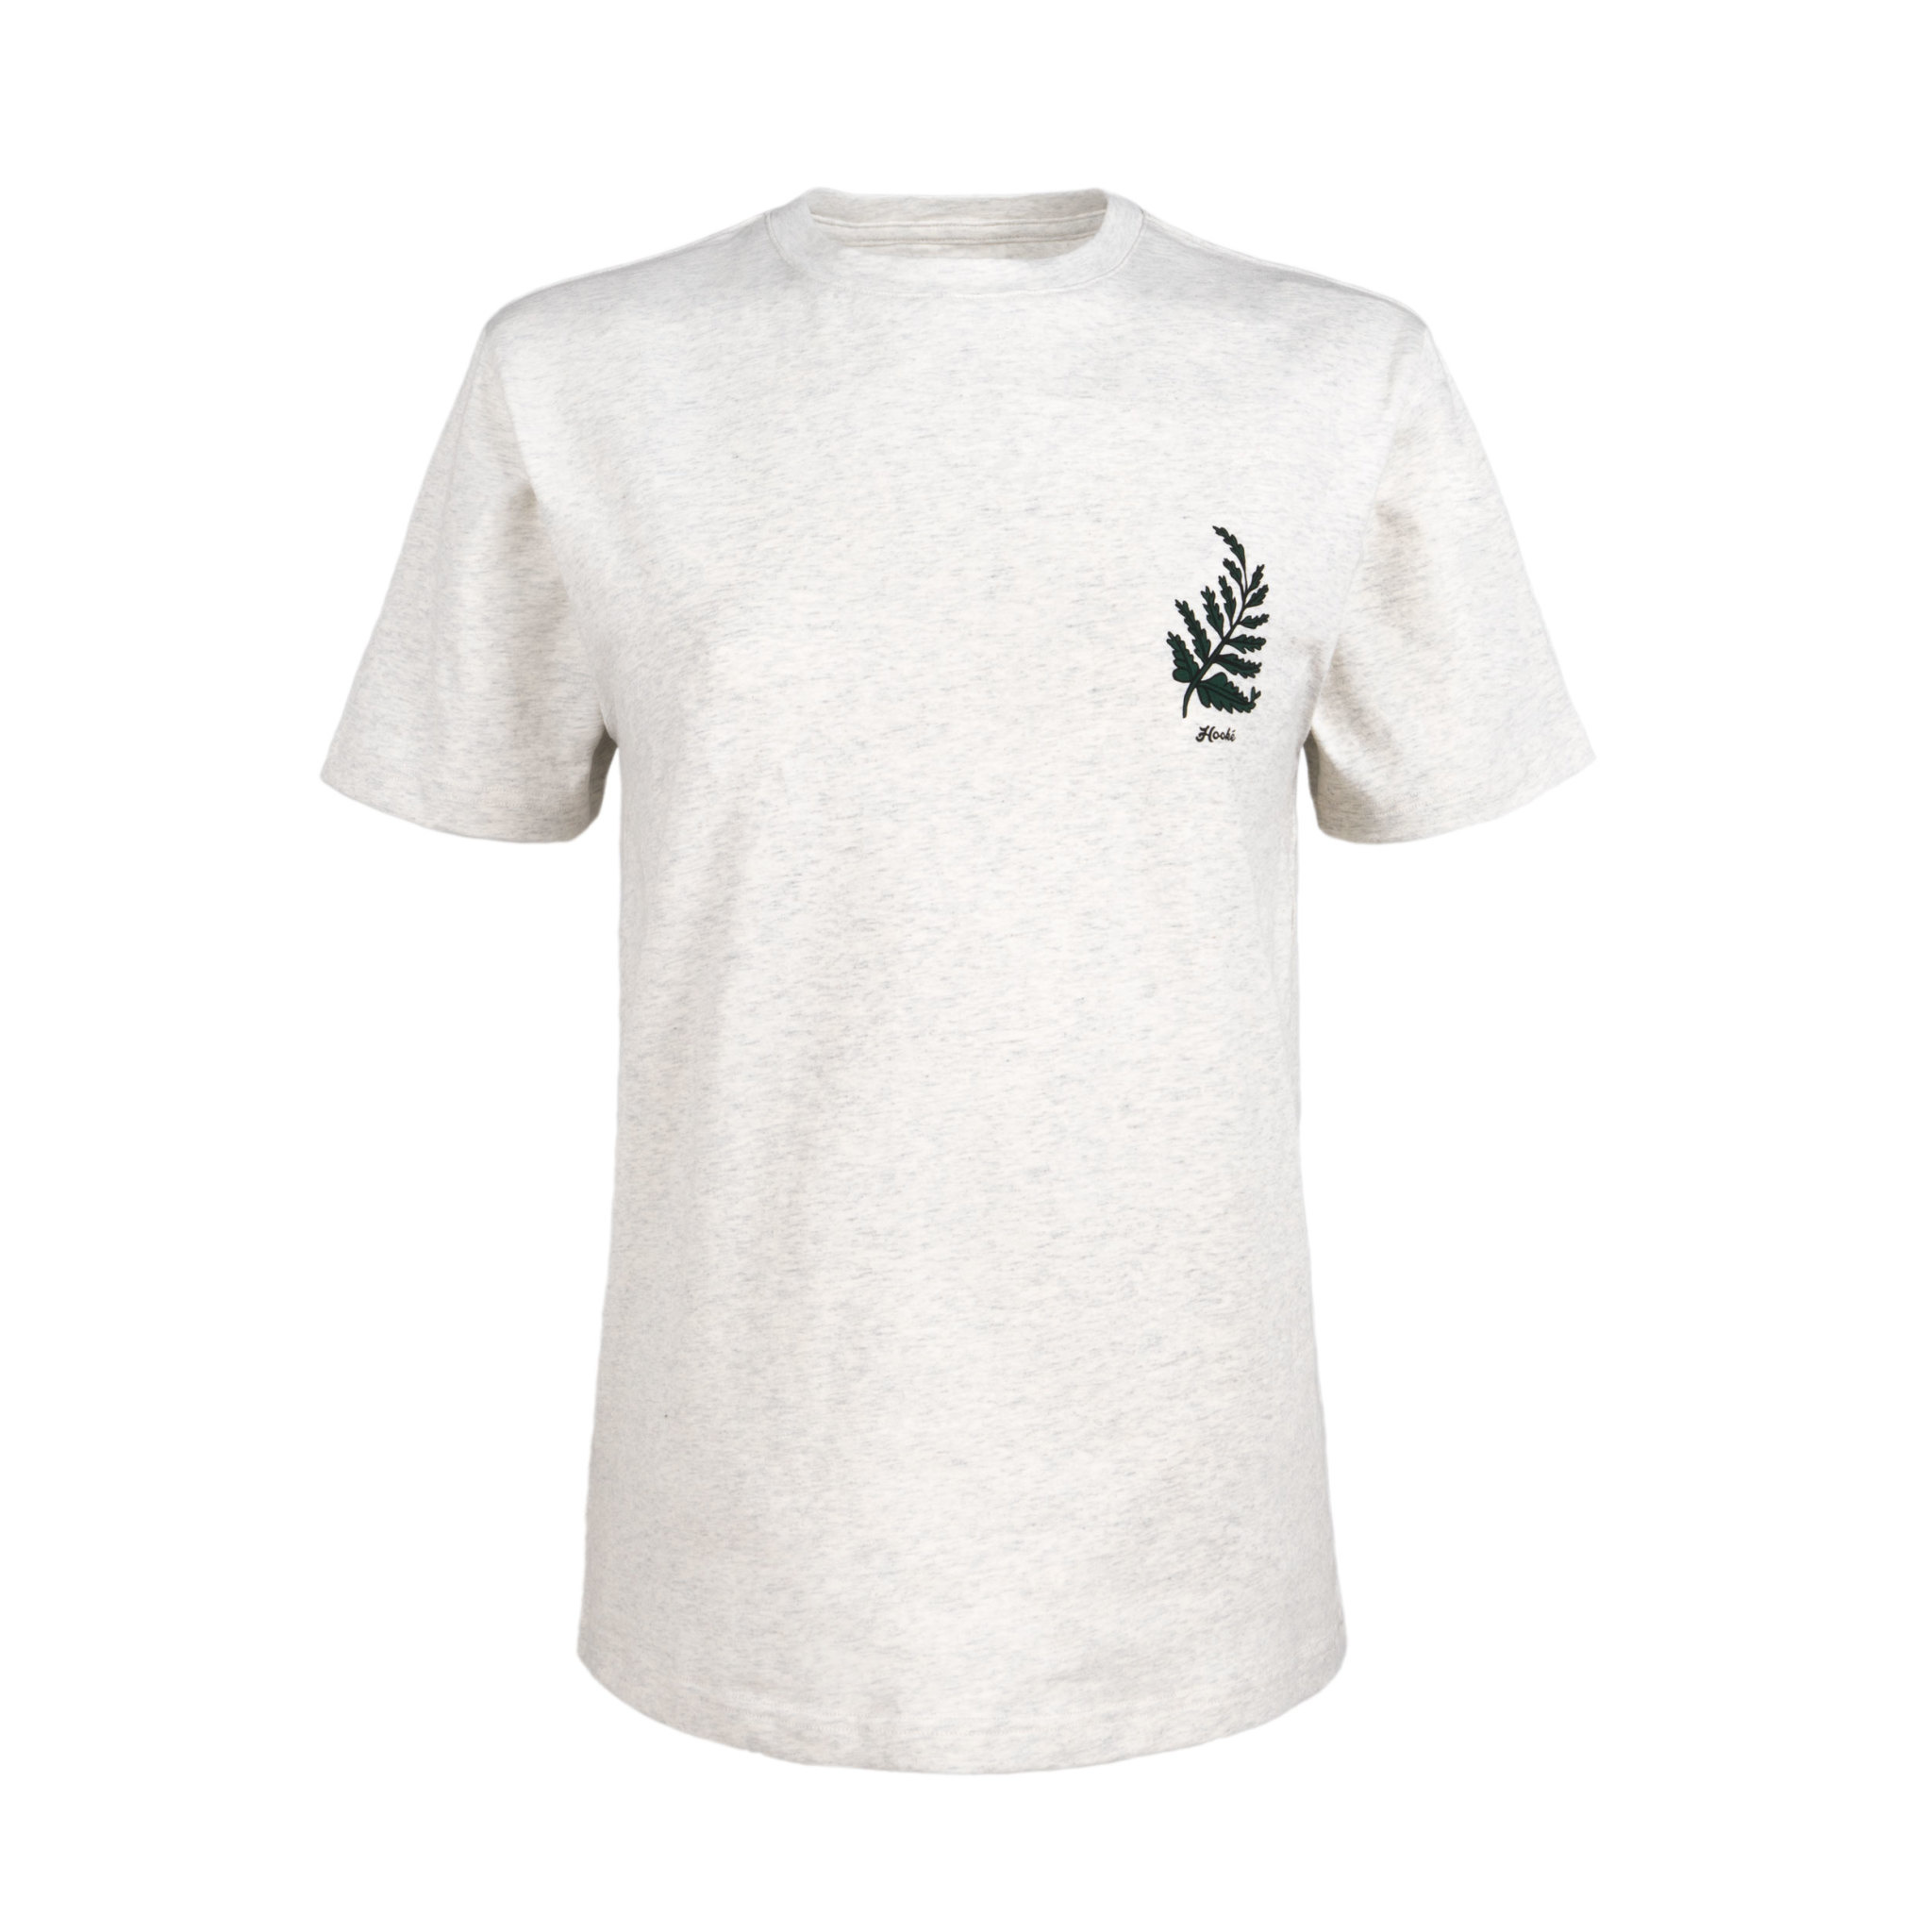 Women's Foliage T-Shirt